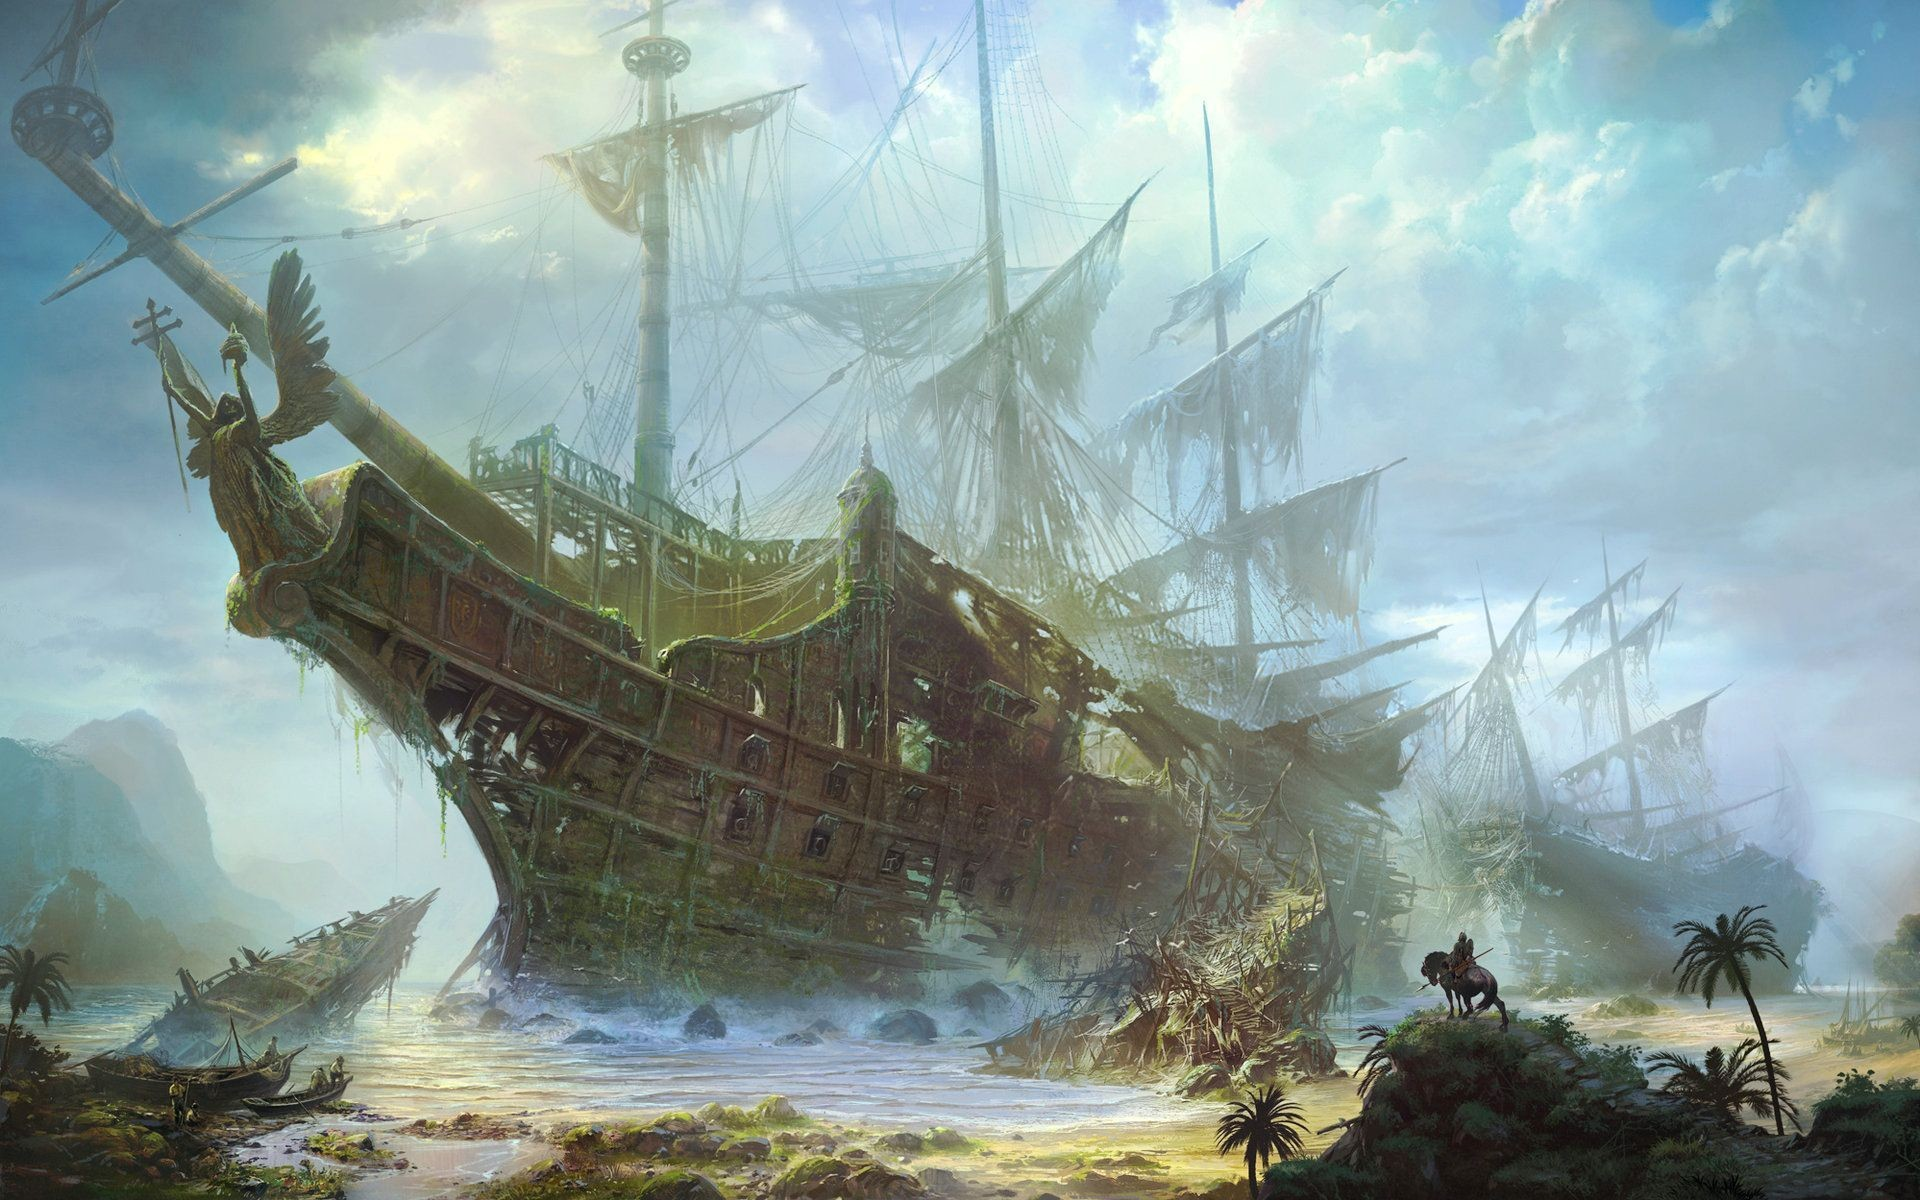 1920x1200 Pirate Ship And Map Wallpaper : Wallpapers13.com ...